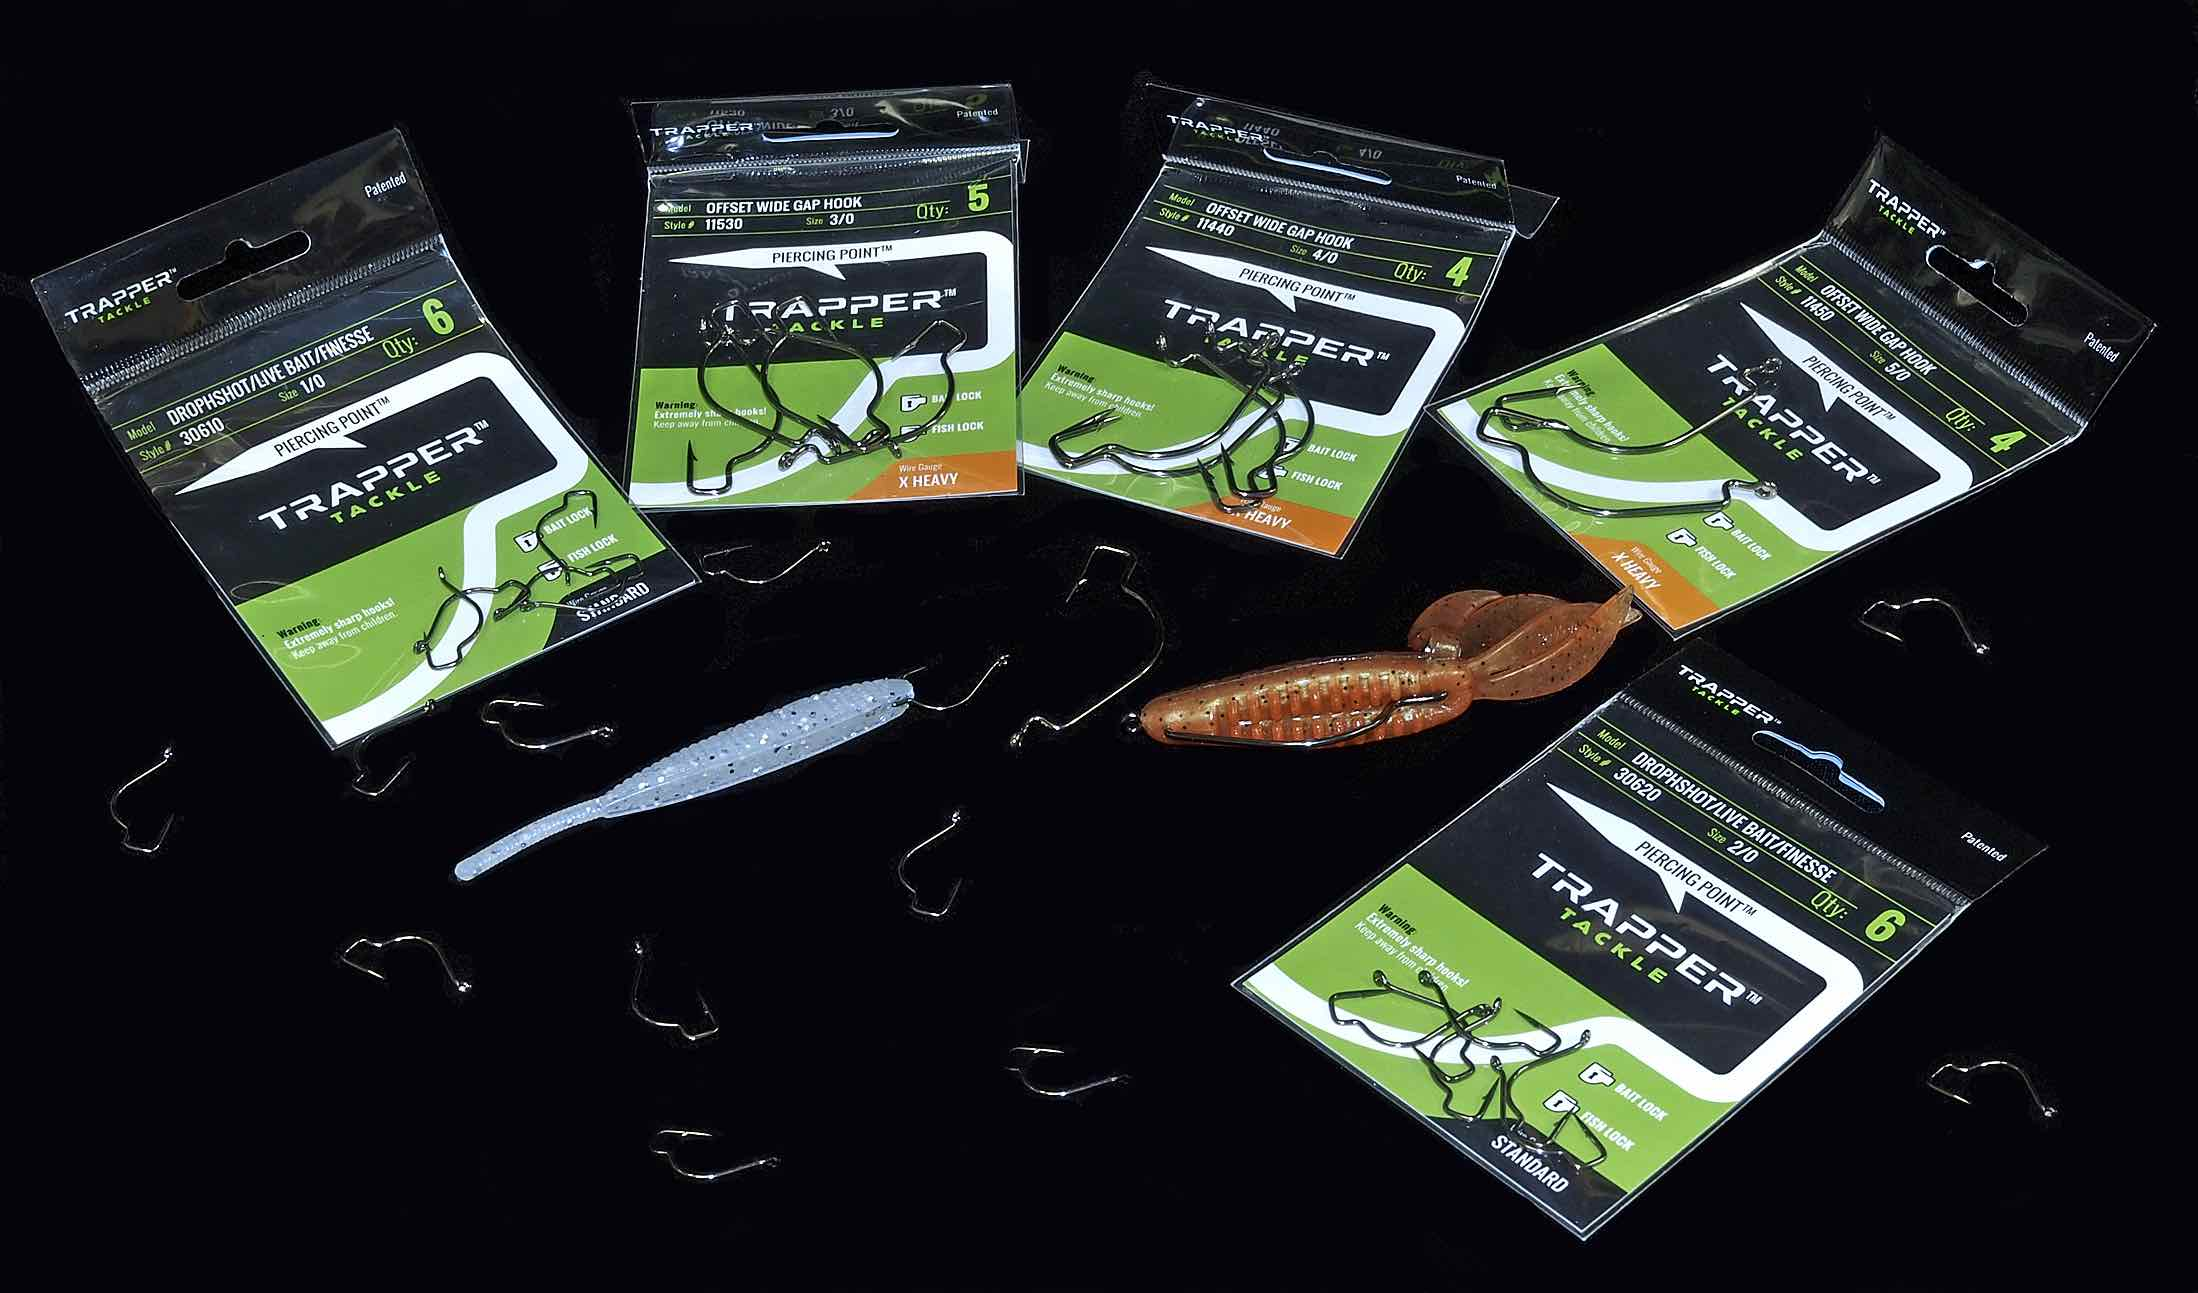 Trapper Tckle Trapper Hook Assortment